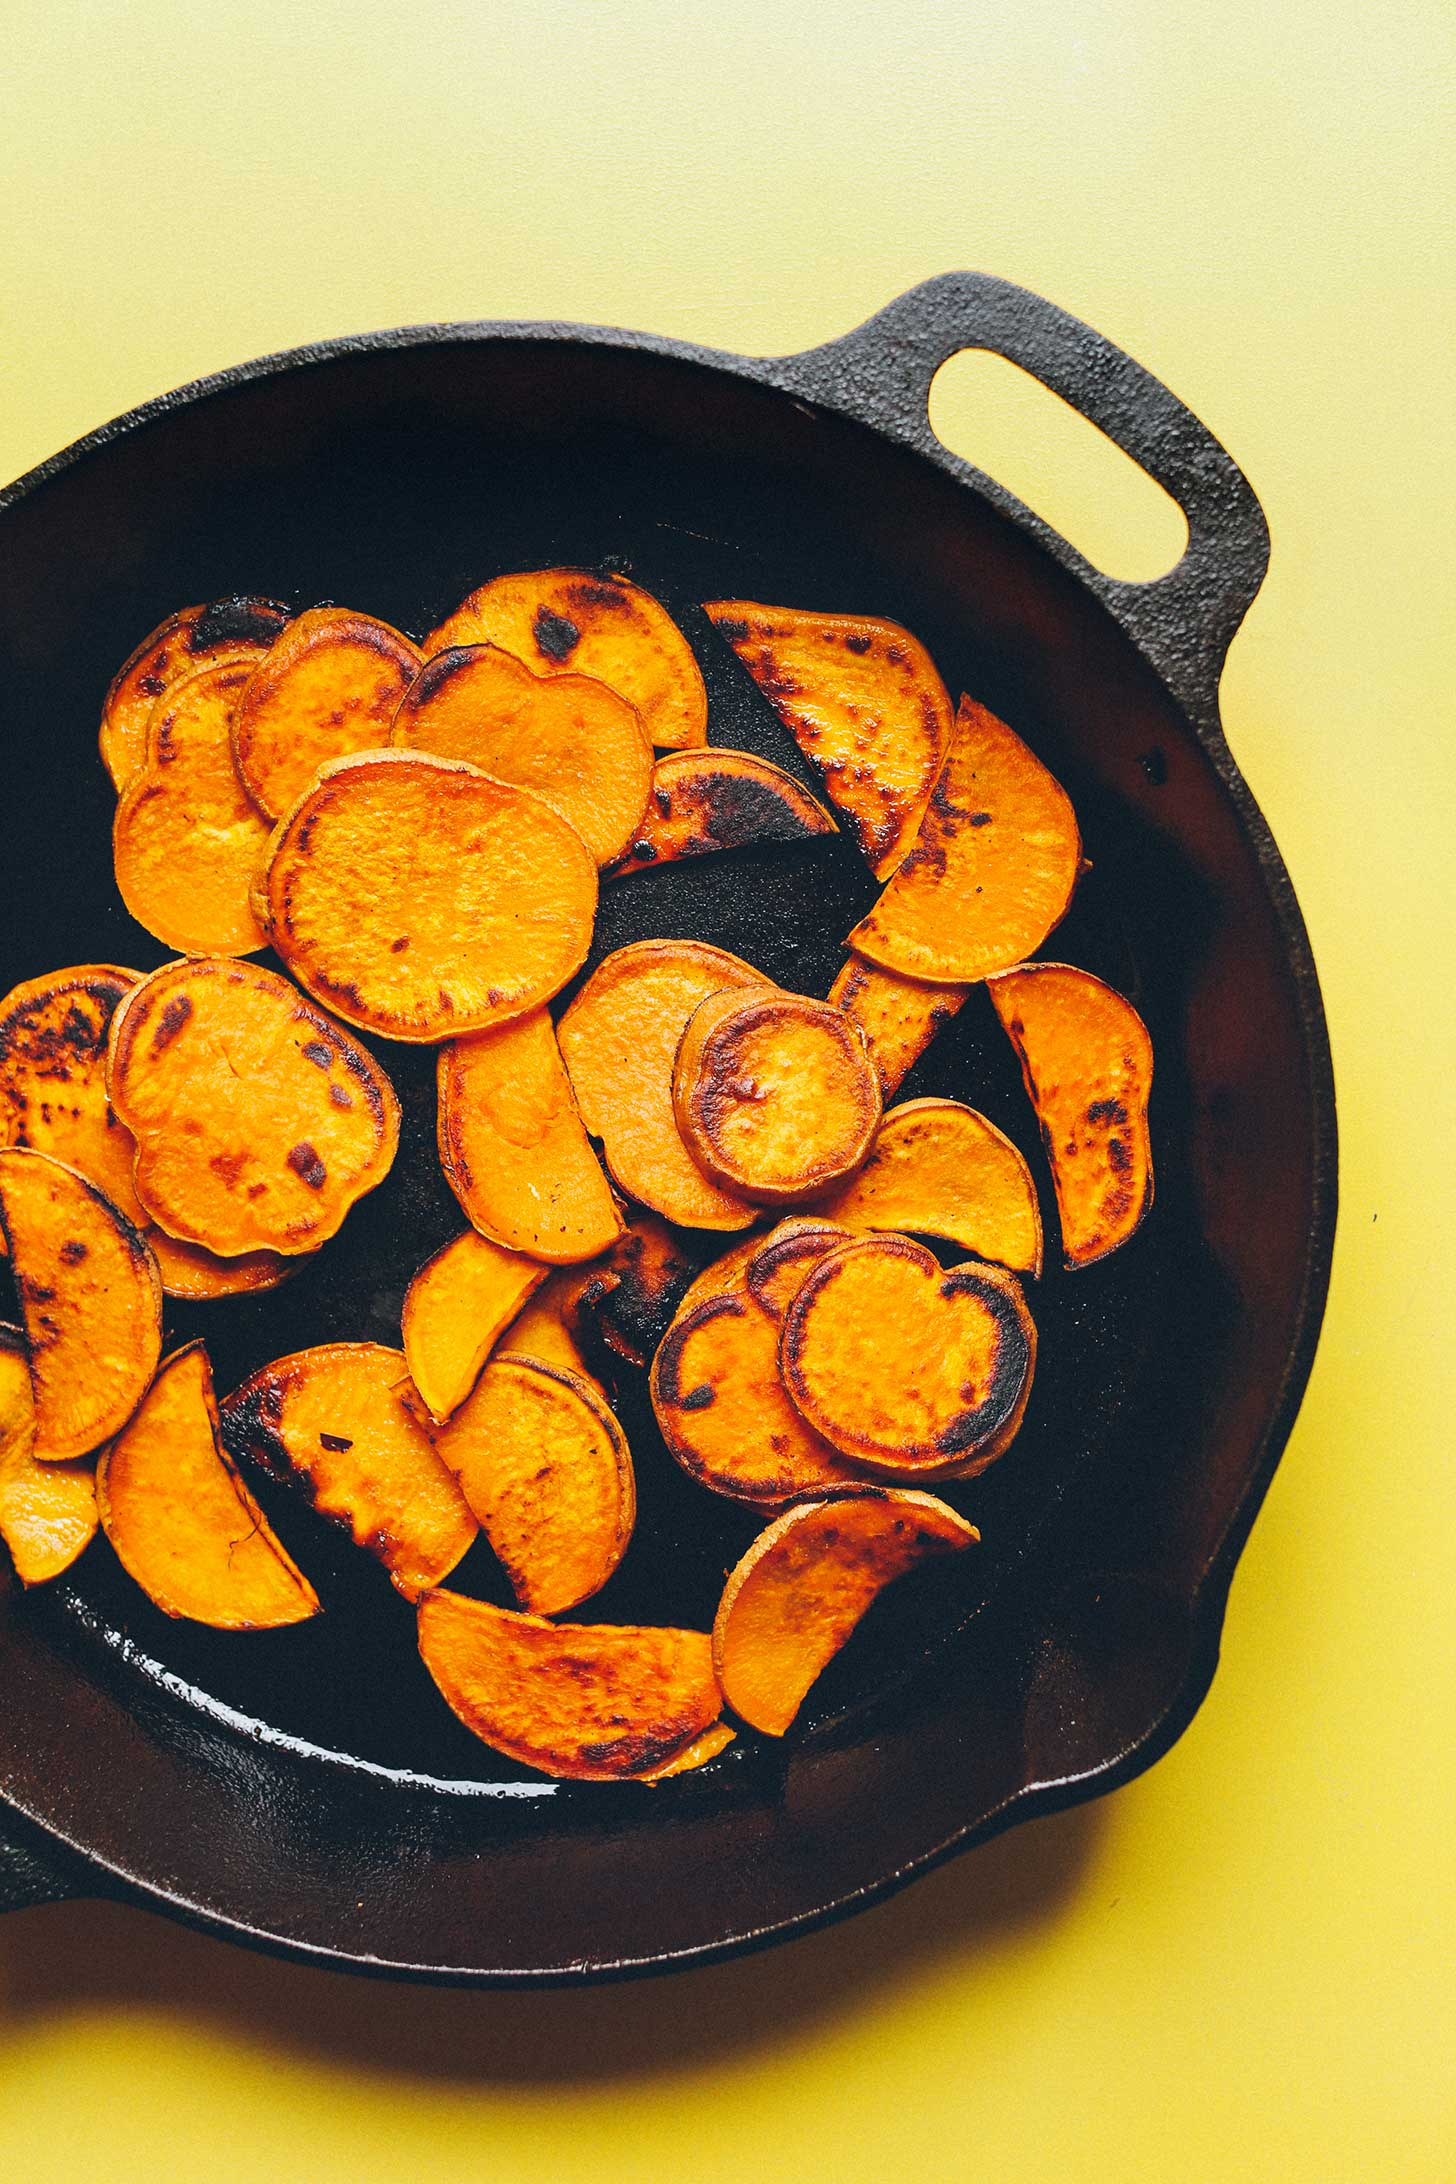 Cooking cast-iron skillet sweet potatoes for healthy plant-based kale nachos